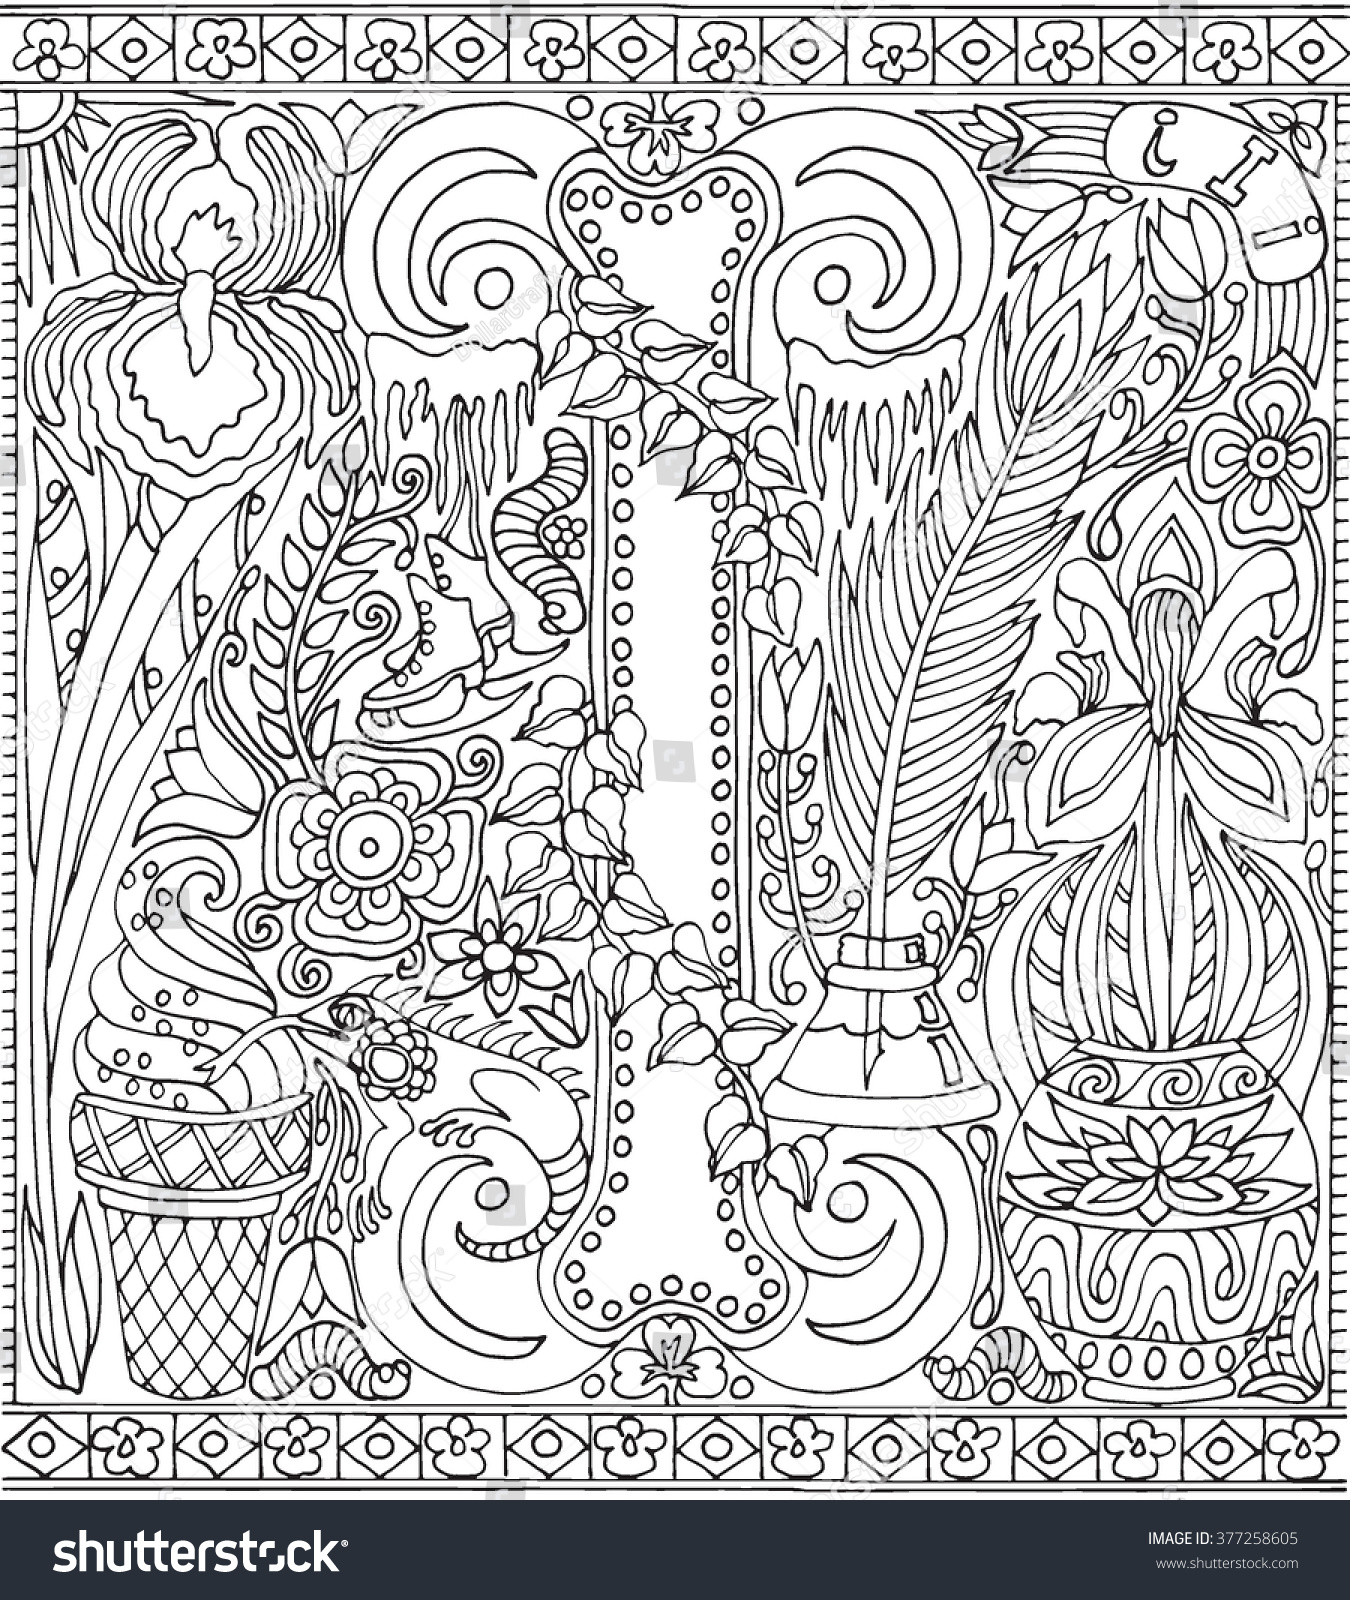 Adult Coloring Book Page Alphabet Letter Stock Vector 377258605 ...